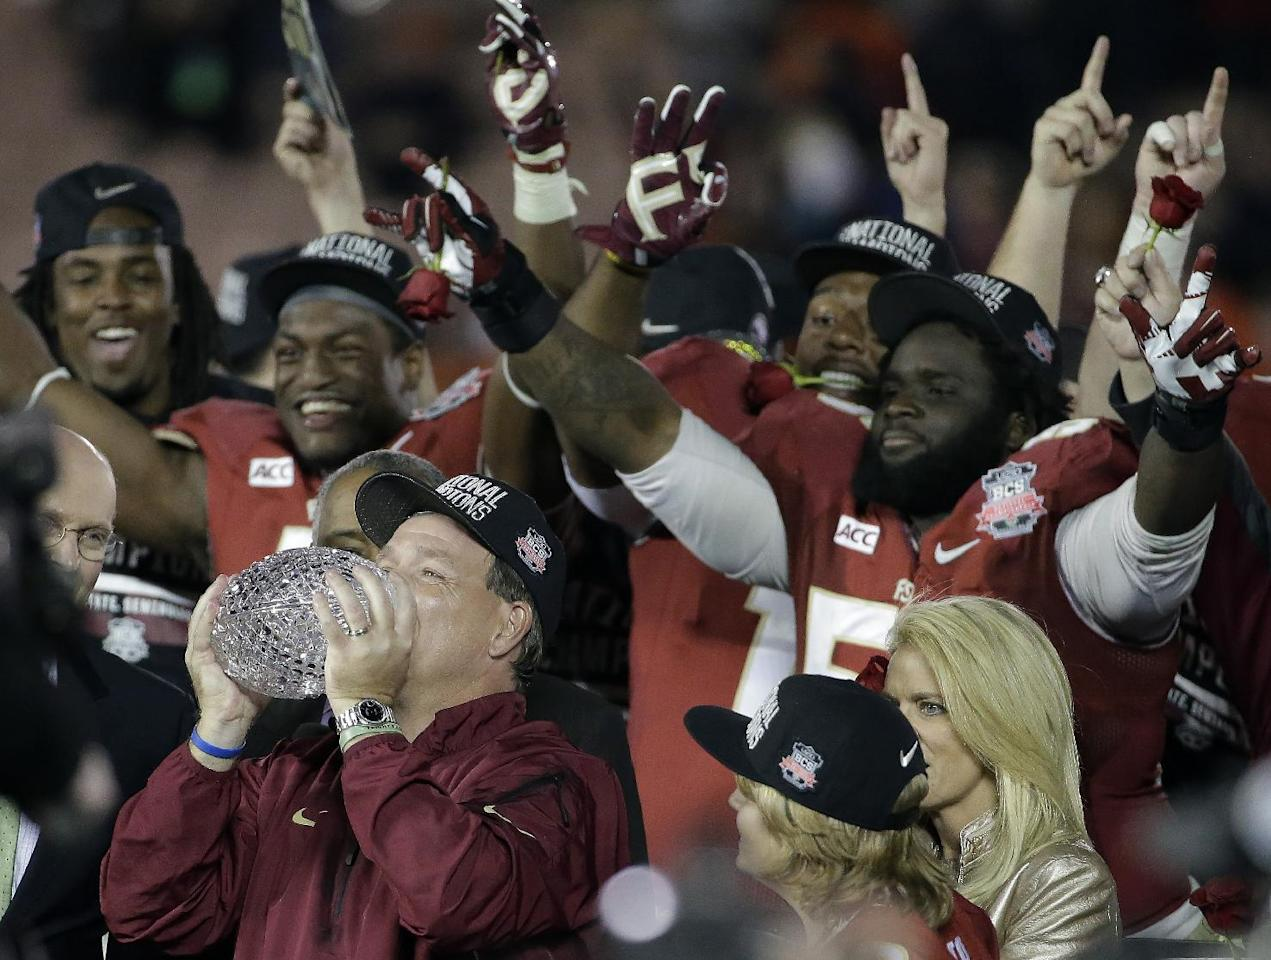 Florida State head coach Jimbo Fisher kisses The Coaches' Trophy after the NCAA BCS National Championship college football game against Auburn Monday, Jan. 6, 2014, in Pasadena, Calif. Florida State won 34-31. (AP Photo/Chris Carlson)